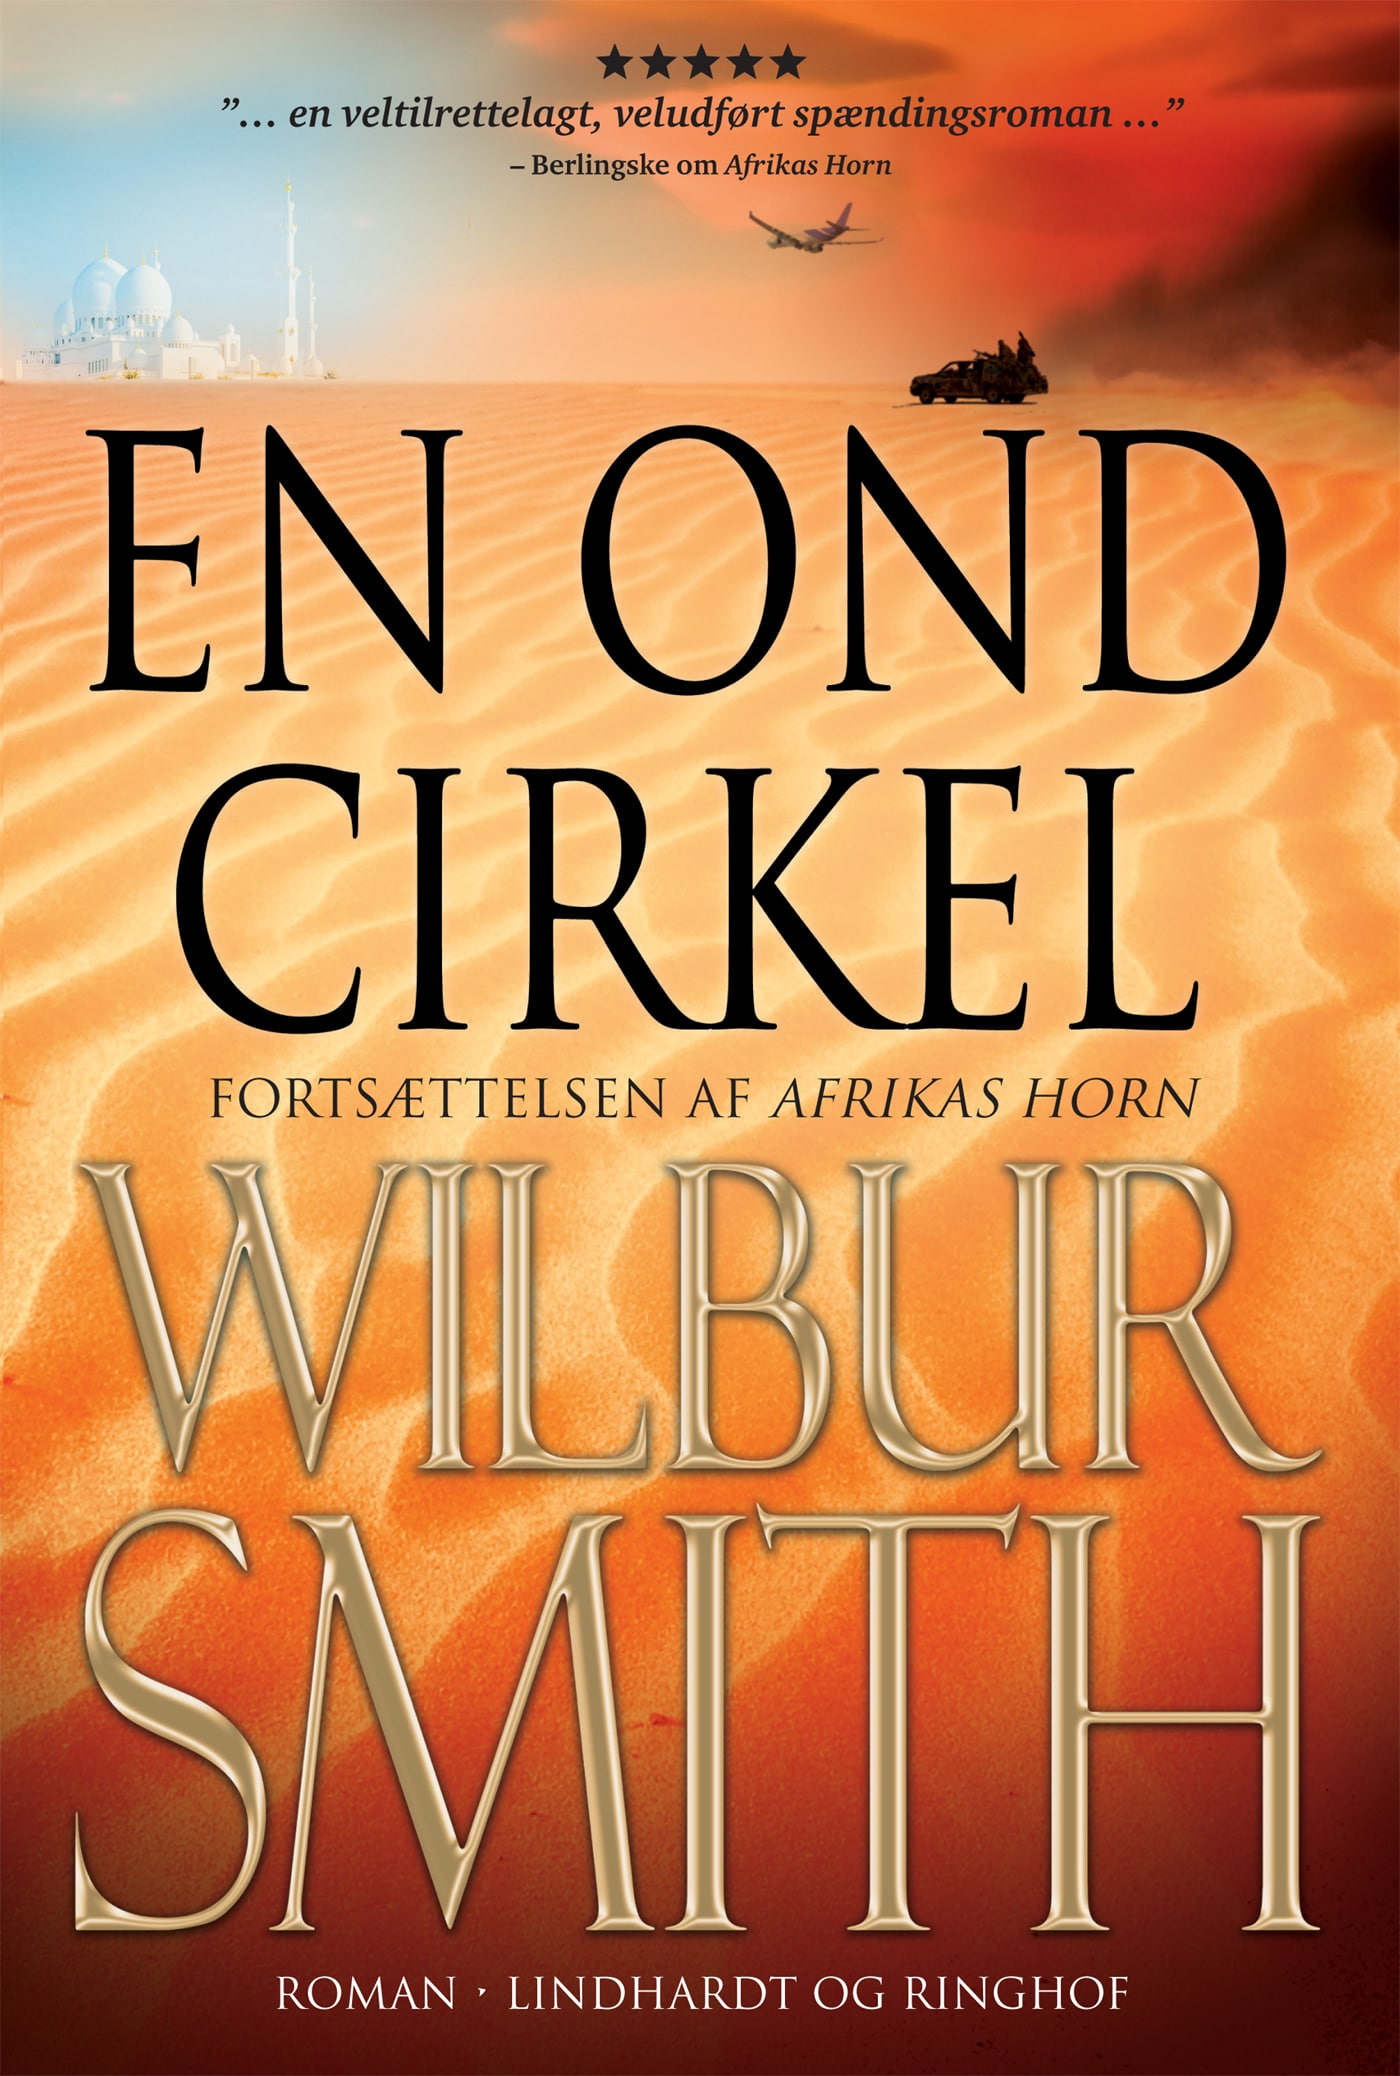 En ond cirkel, Wilbur Smith, Hector Cross